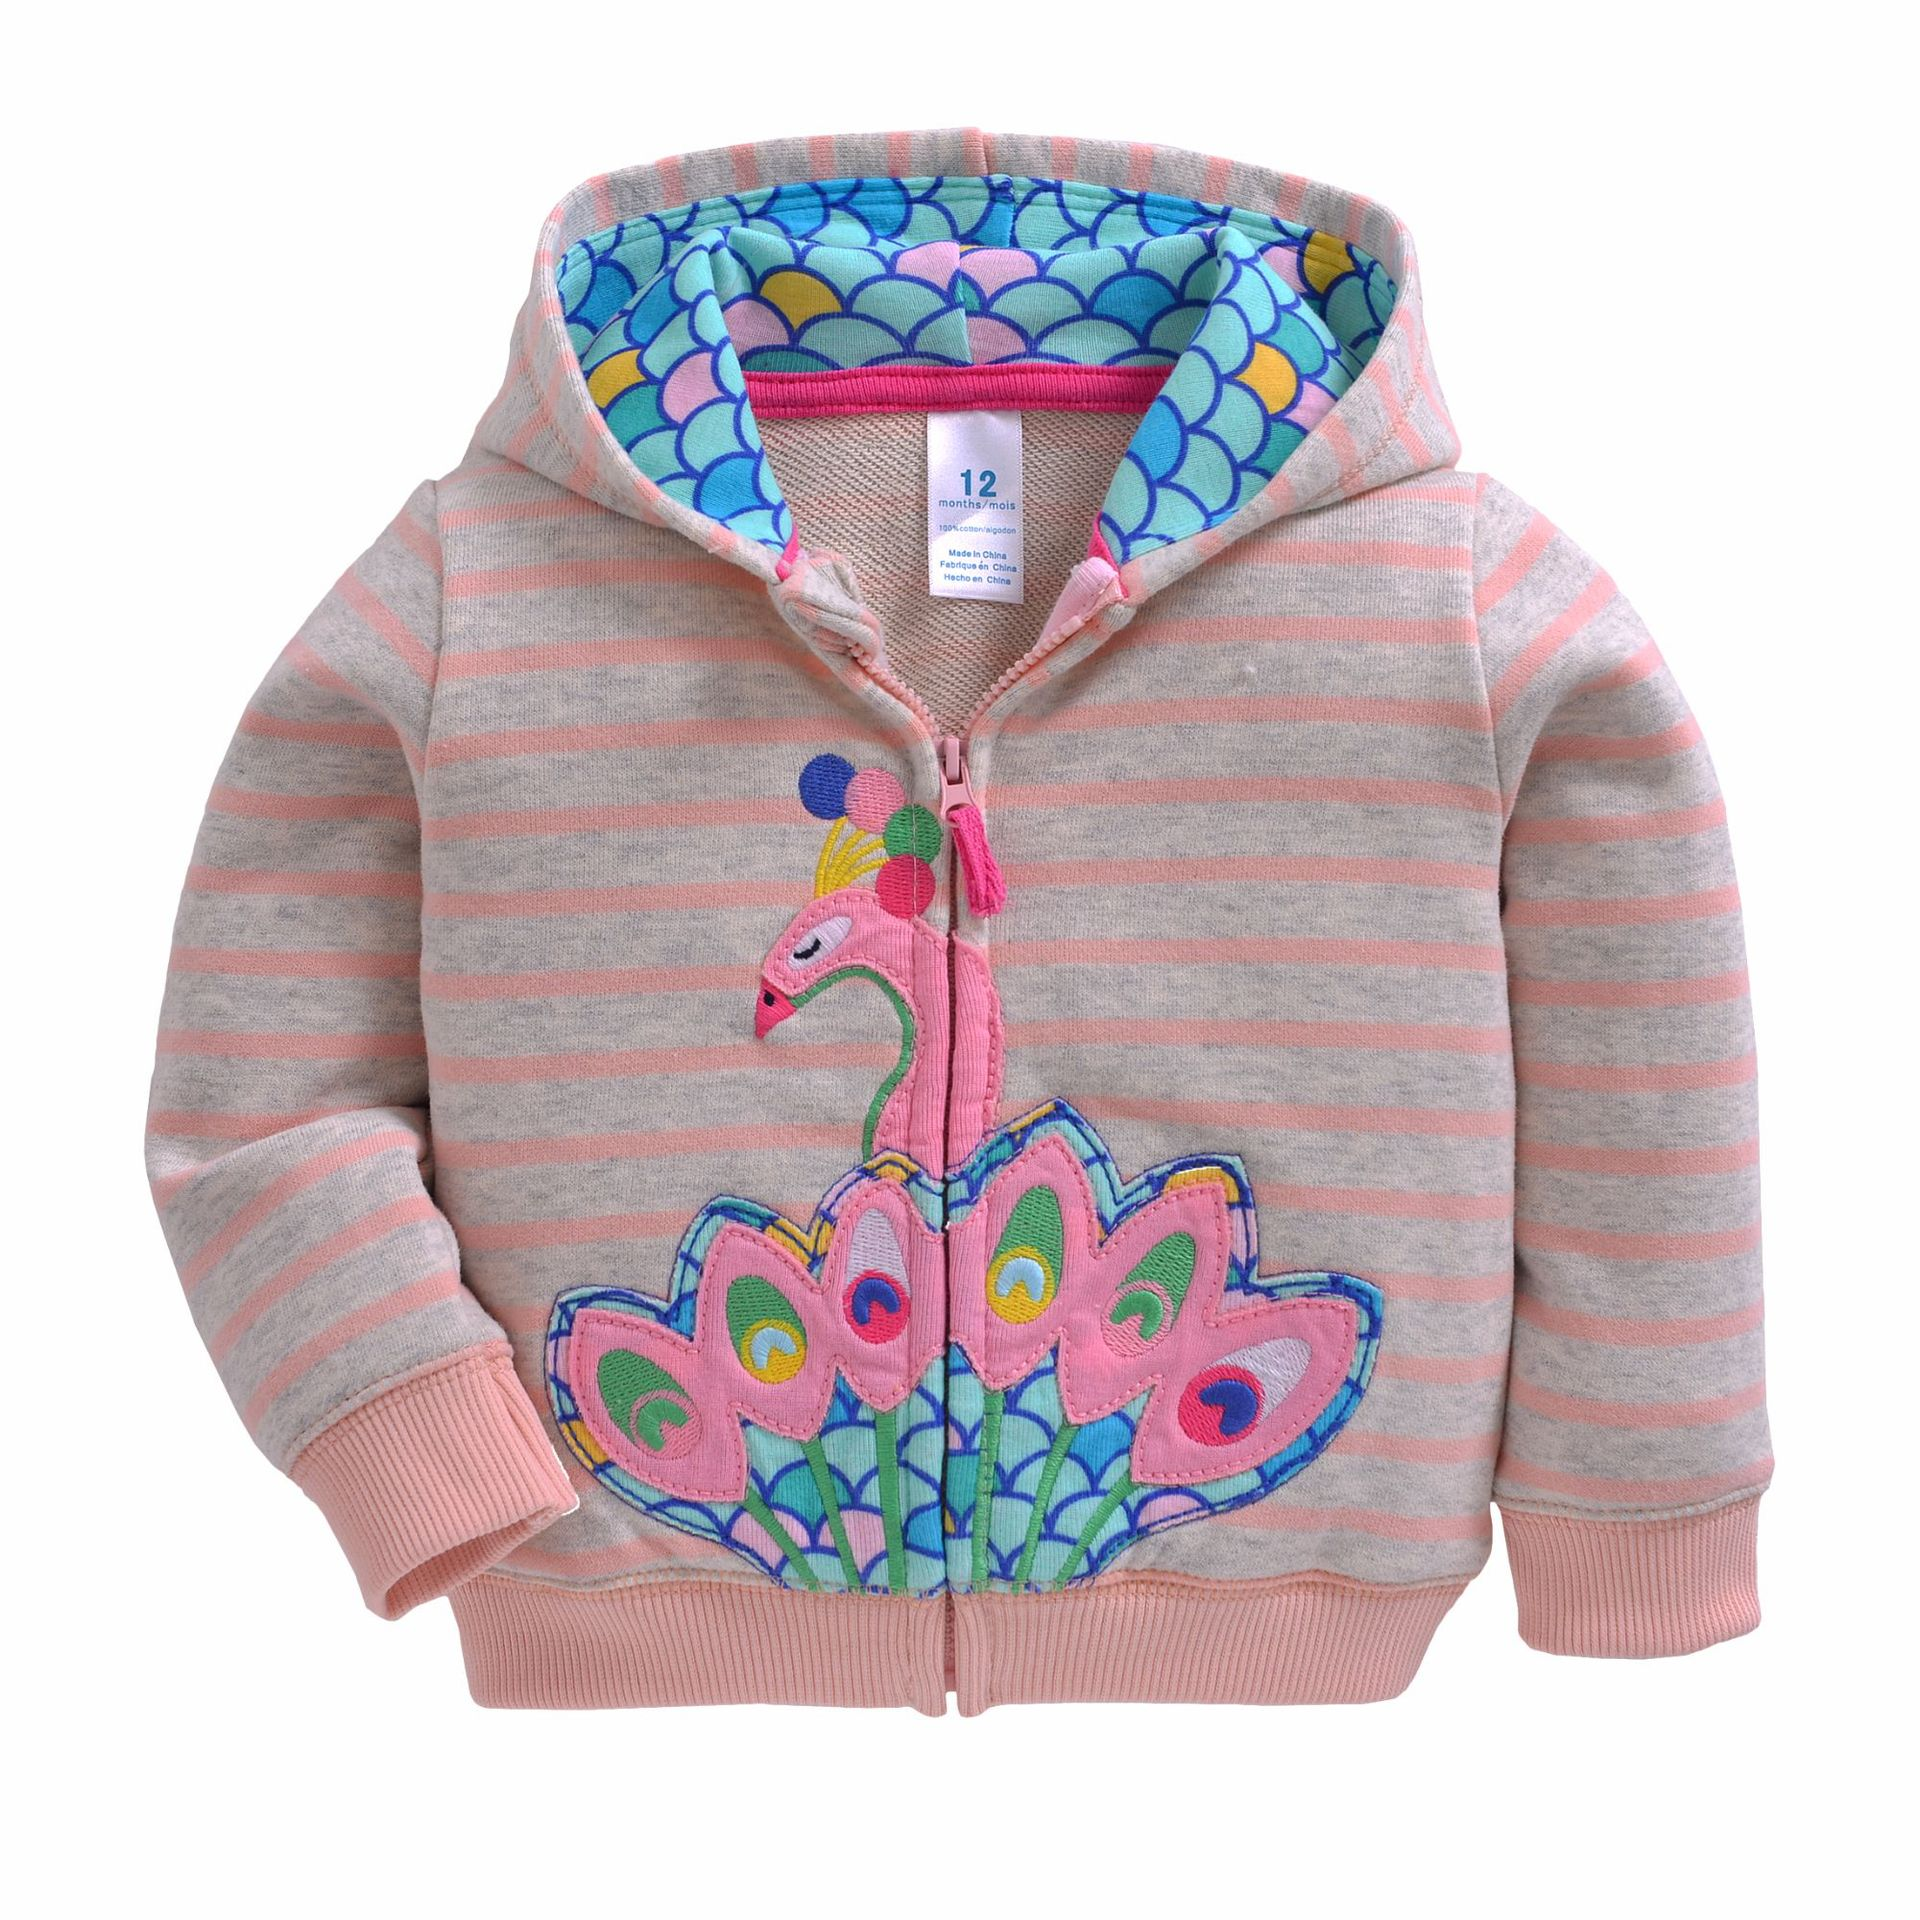 2019 baby boys girls hooded sweatshirts cotton cartoon tops truck flower whale out wear kids clothes for 9m-3years 2